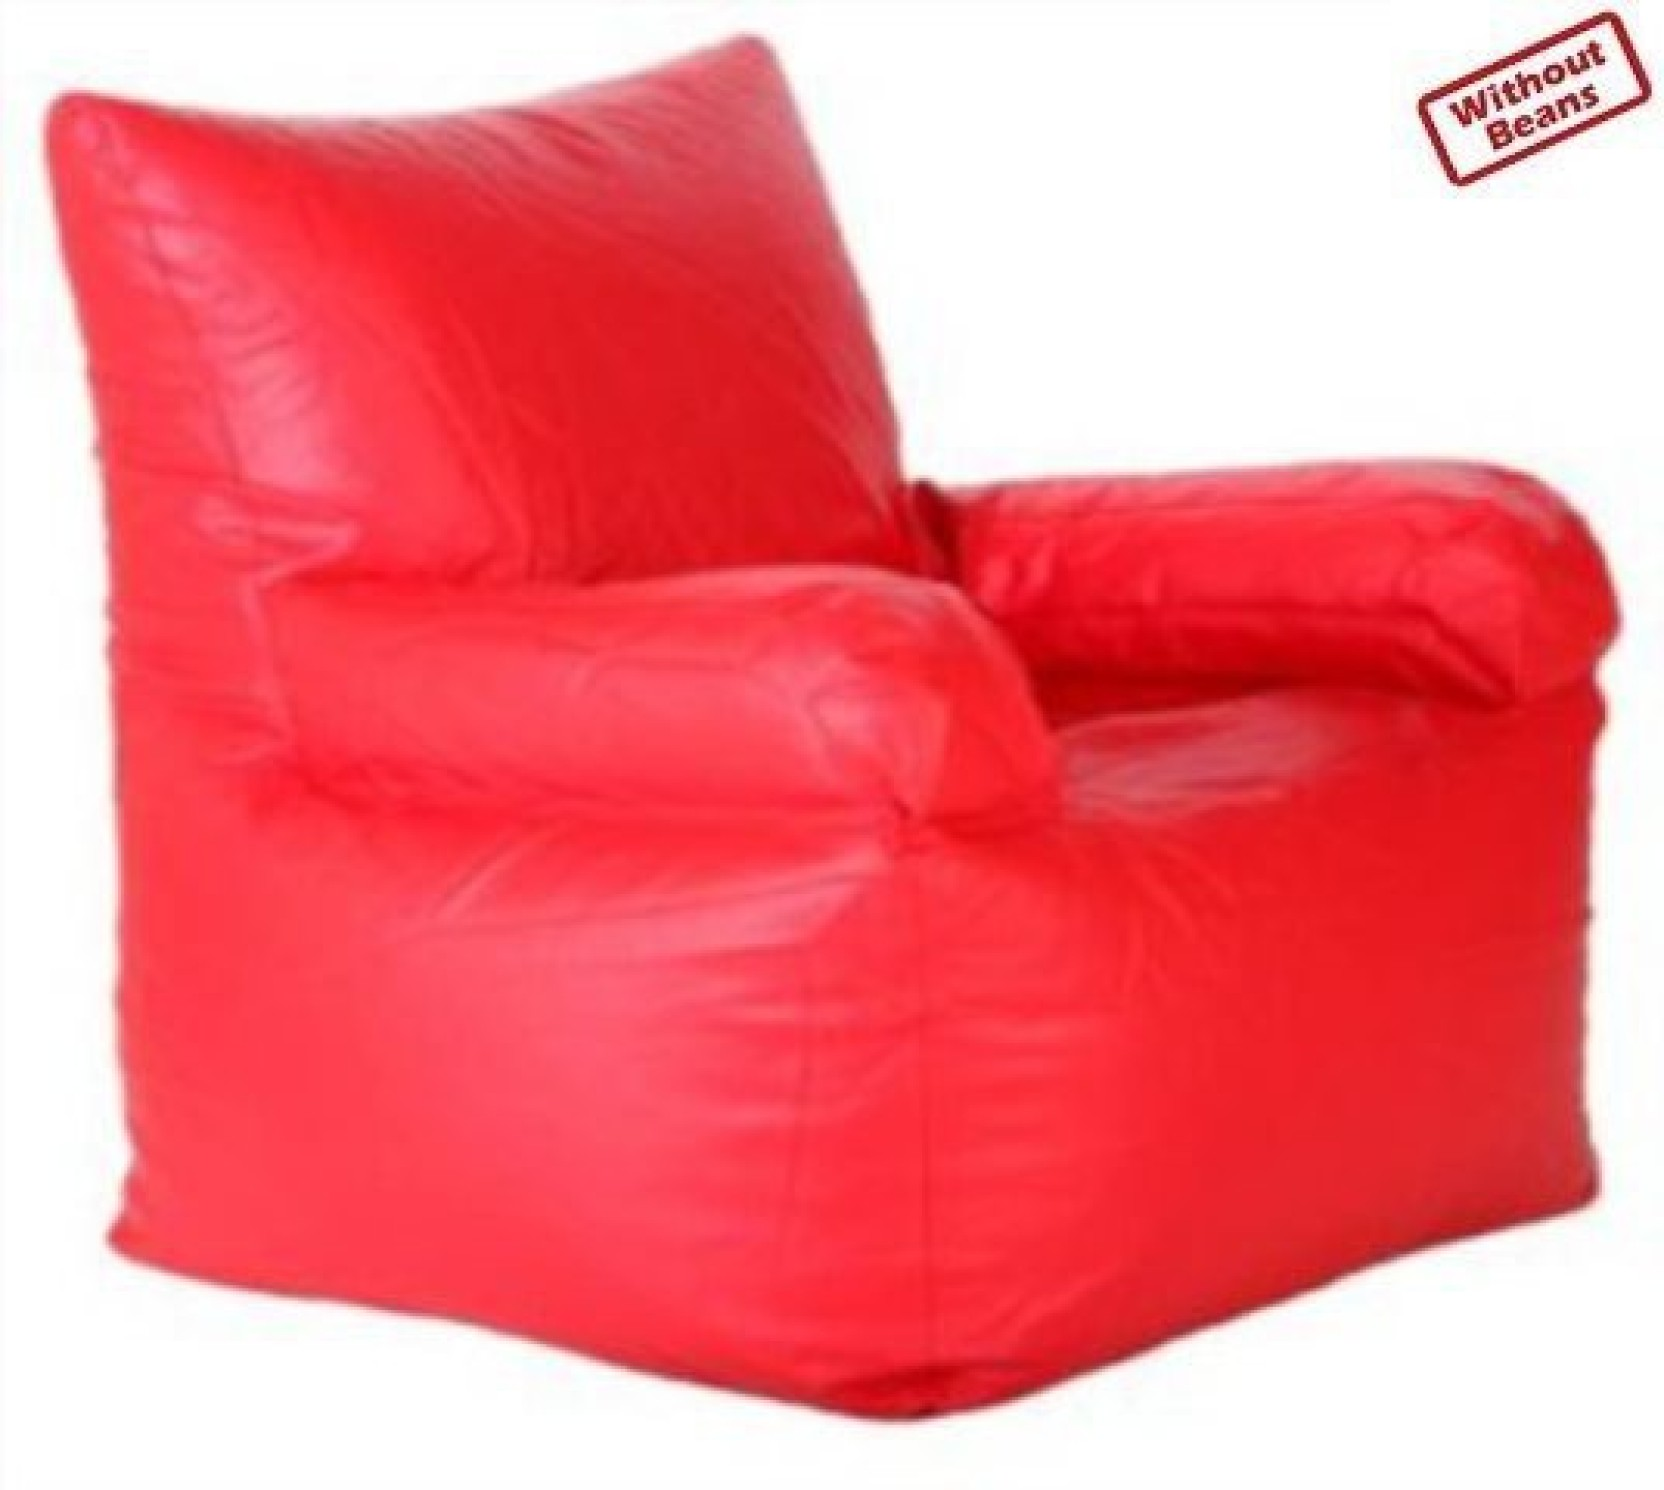 Remarkable Bean Bag Online Purchase Flipkart Mount Mercy University Onthecornerstone Fun Painted Chair Ideas Images Onthecornerstoneorg